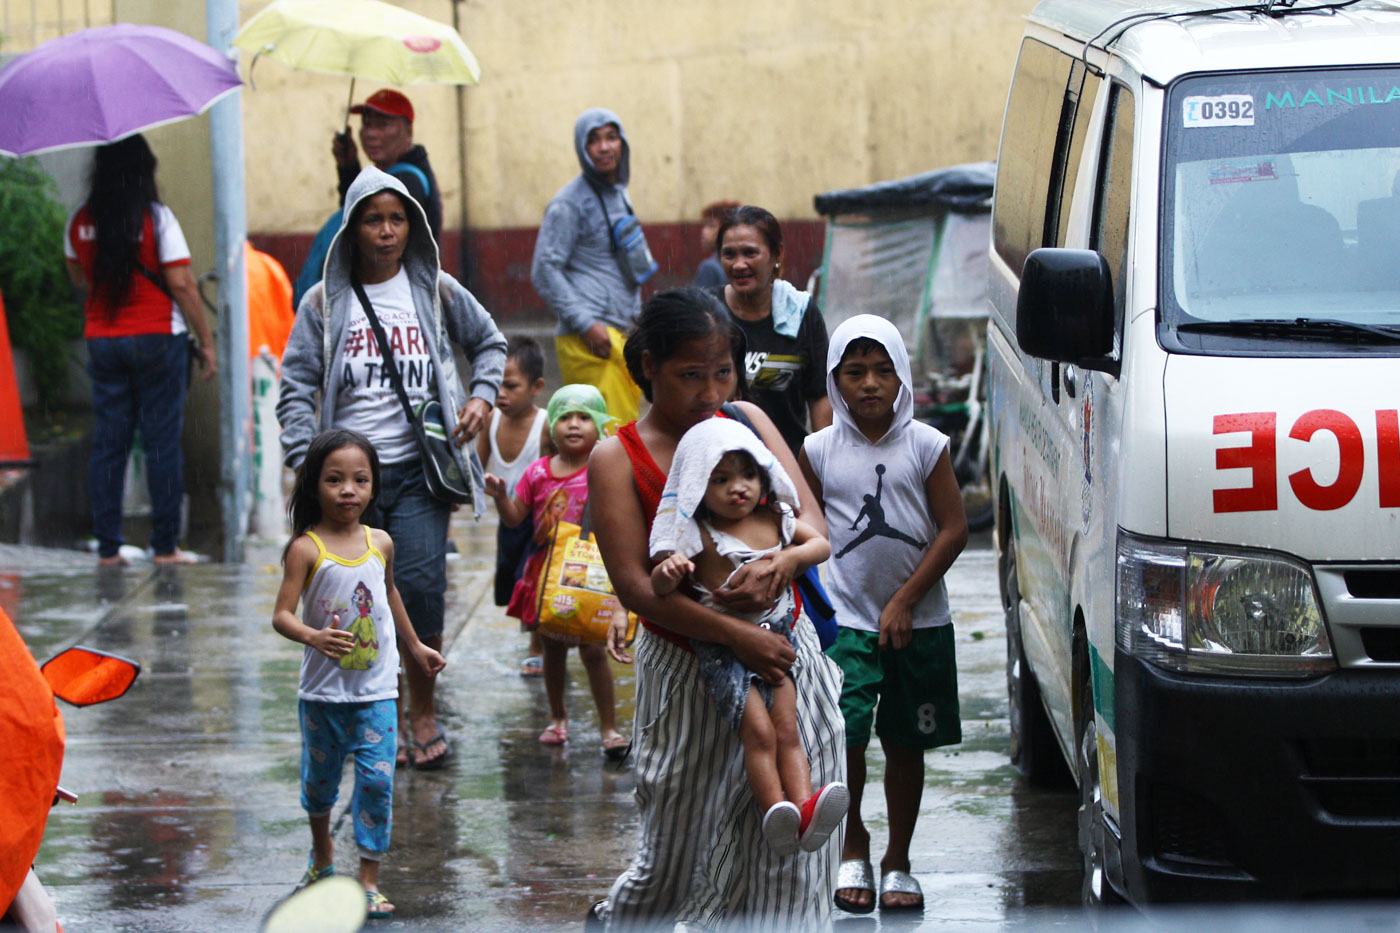 EVACUEES. Families rush to the Delpan Evacuation Center in Manila as they voluntarily leave their homes due to strong winds and rain. Photo by Ben Nabong/Rappler